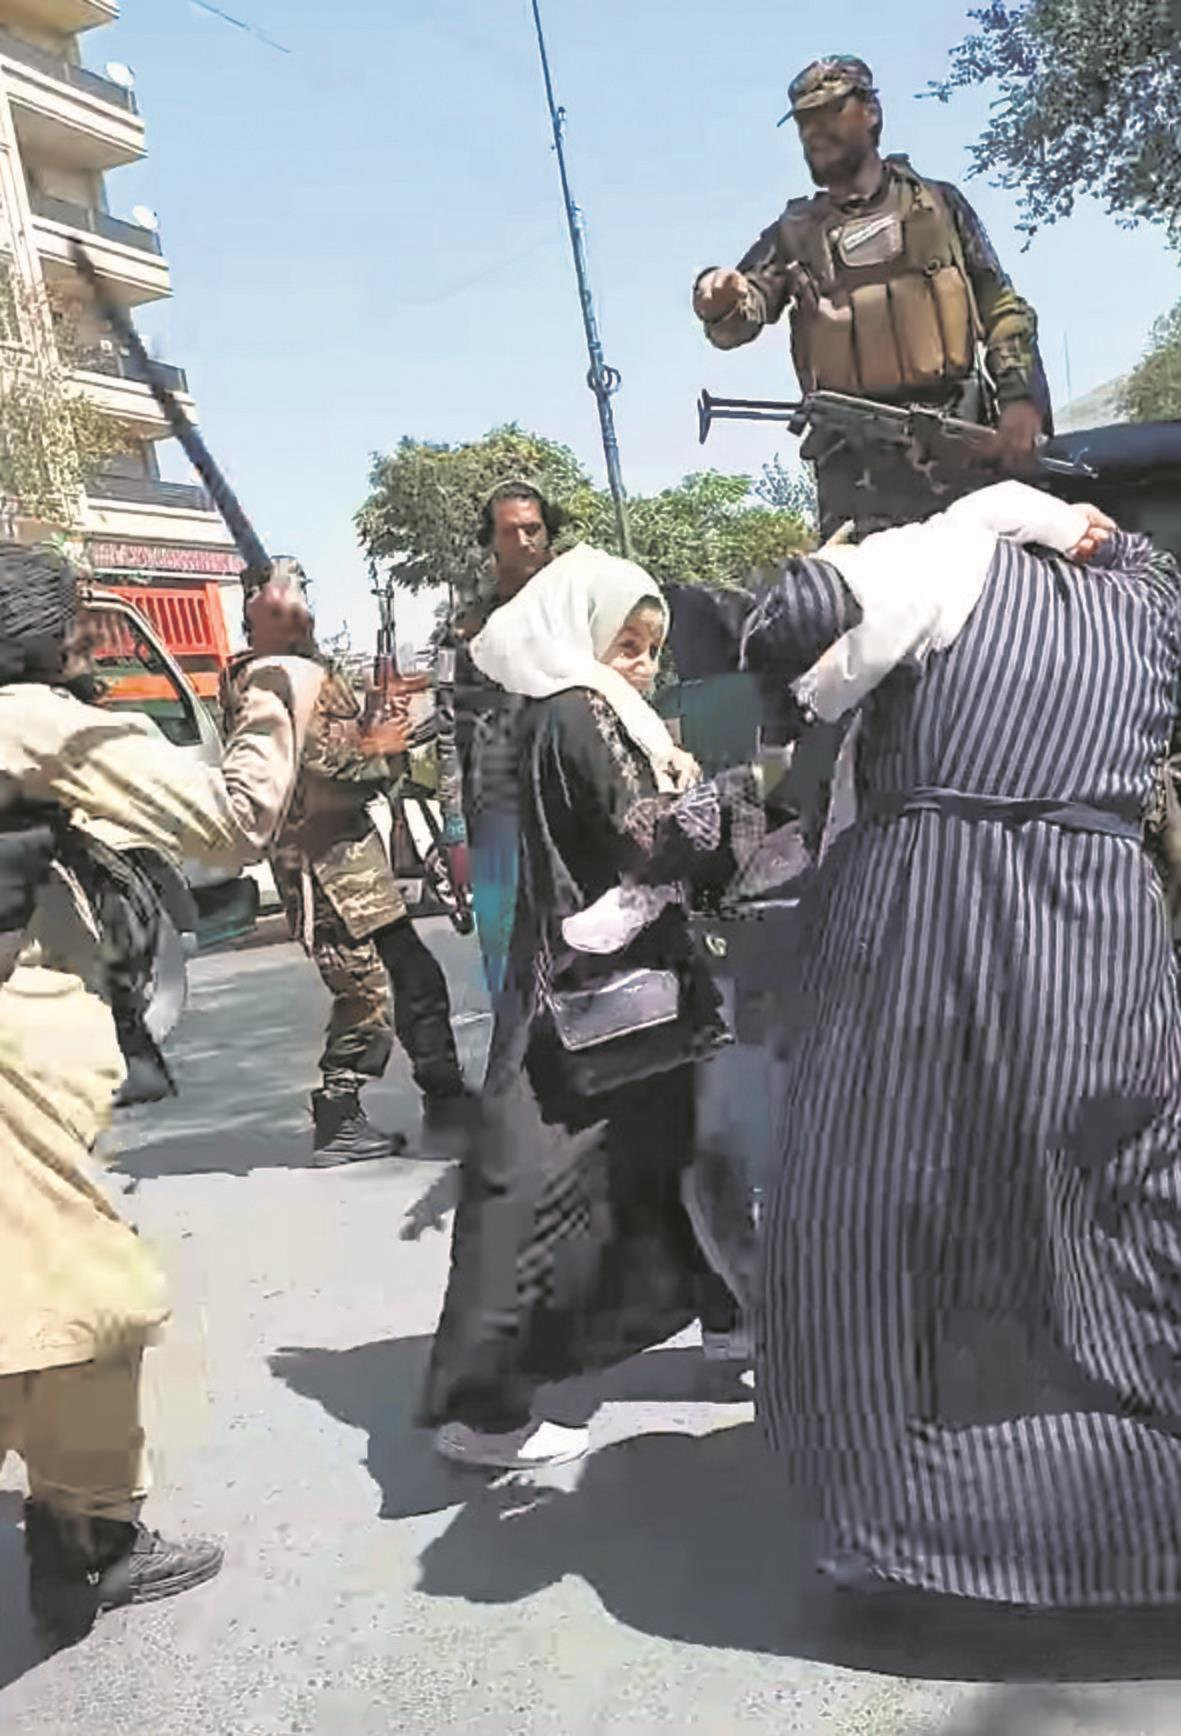 Army colony evictions trigger massive anti-Taliban protest